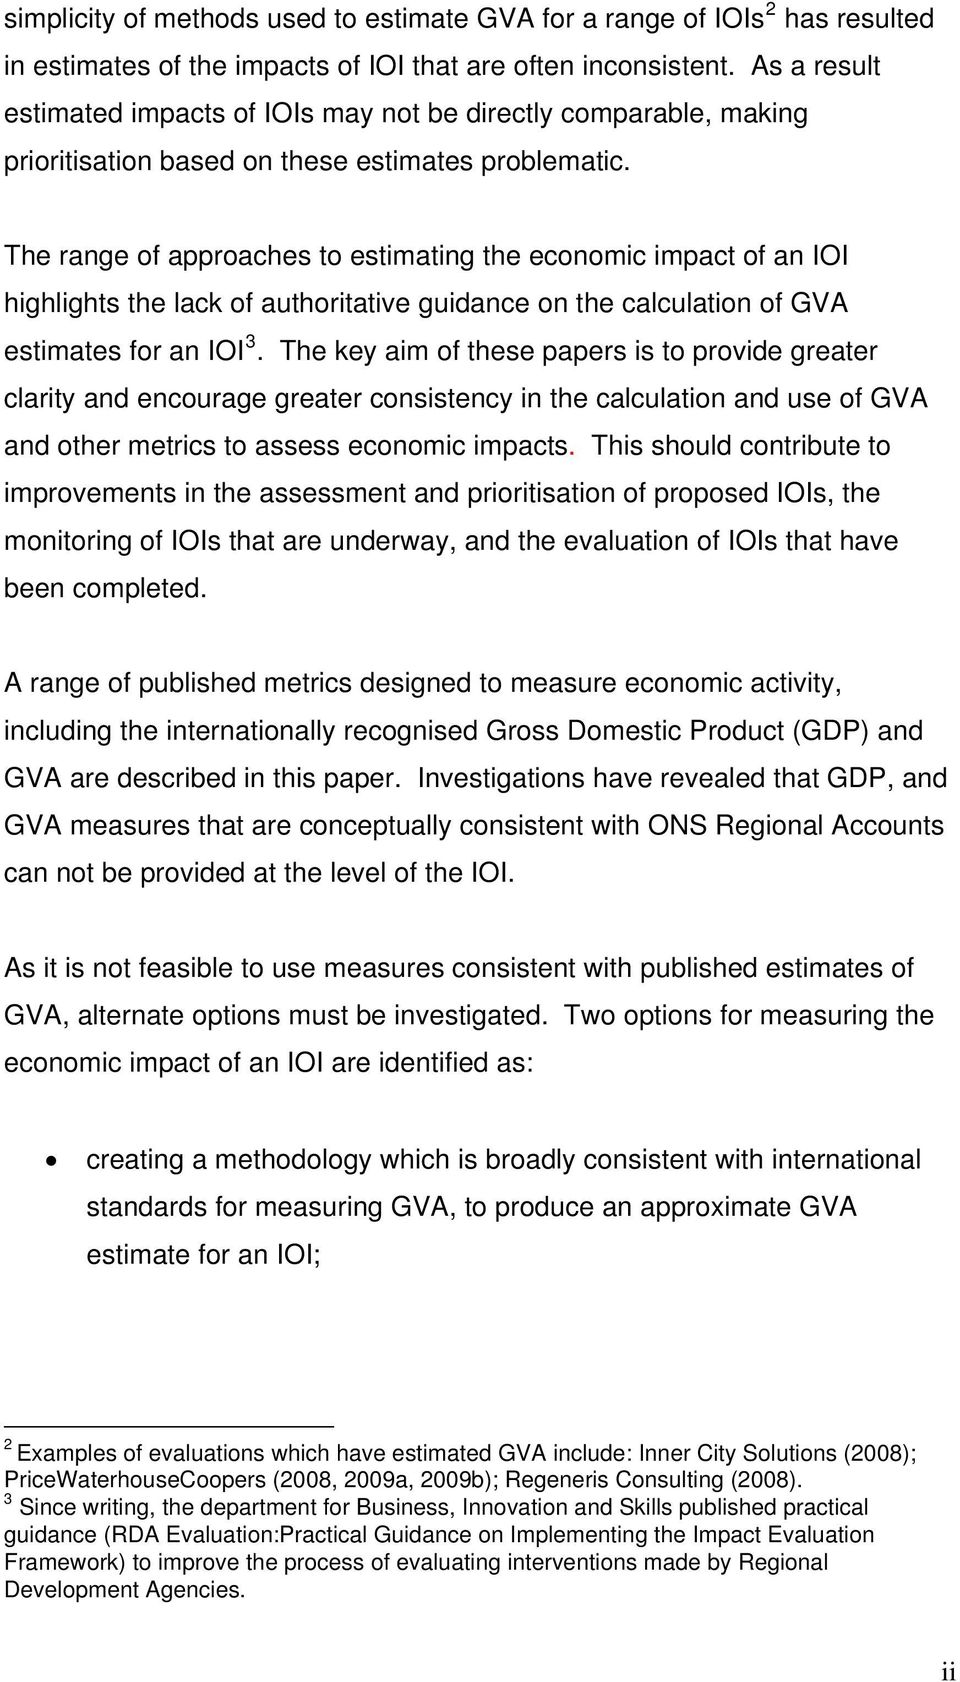 The range of approaches to estimating the economic impact of an IOI highlights the lack of authoritative guidance on the calculation of GVA estimates for an IOI 3.